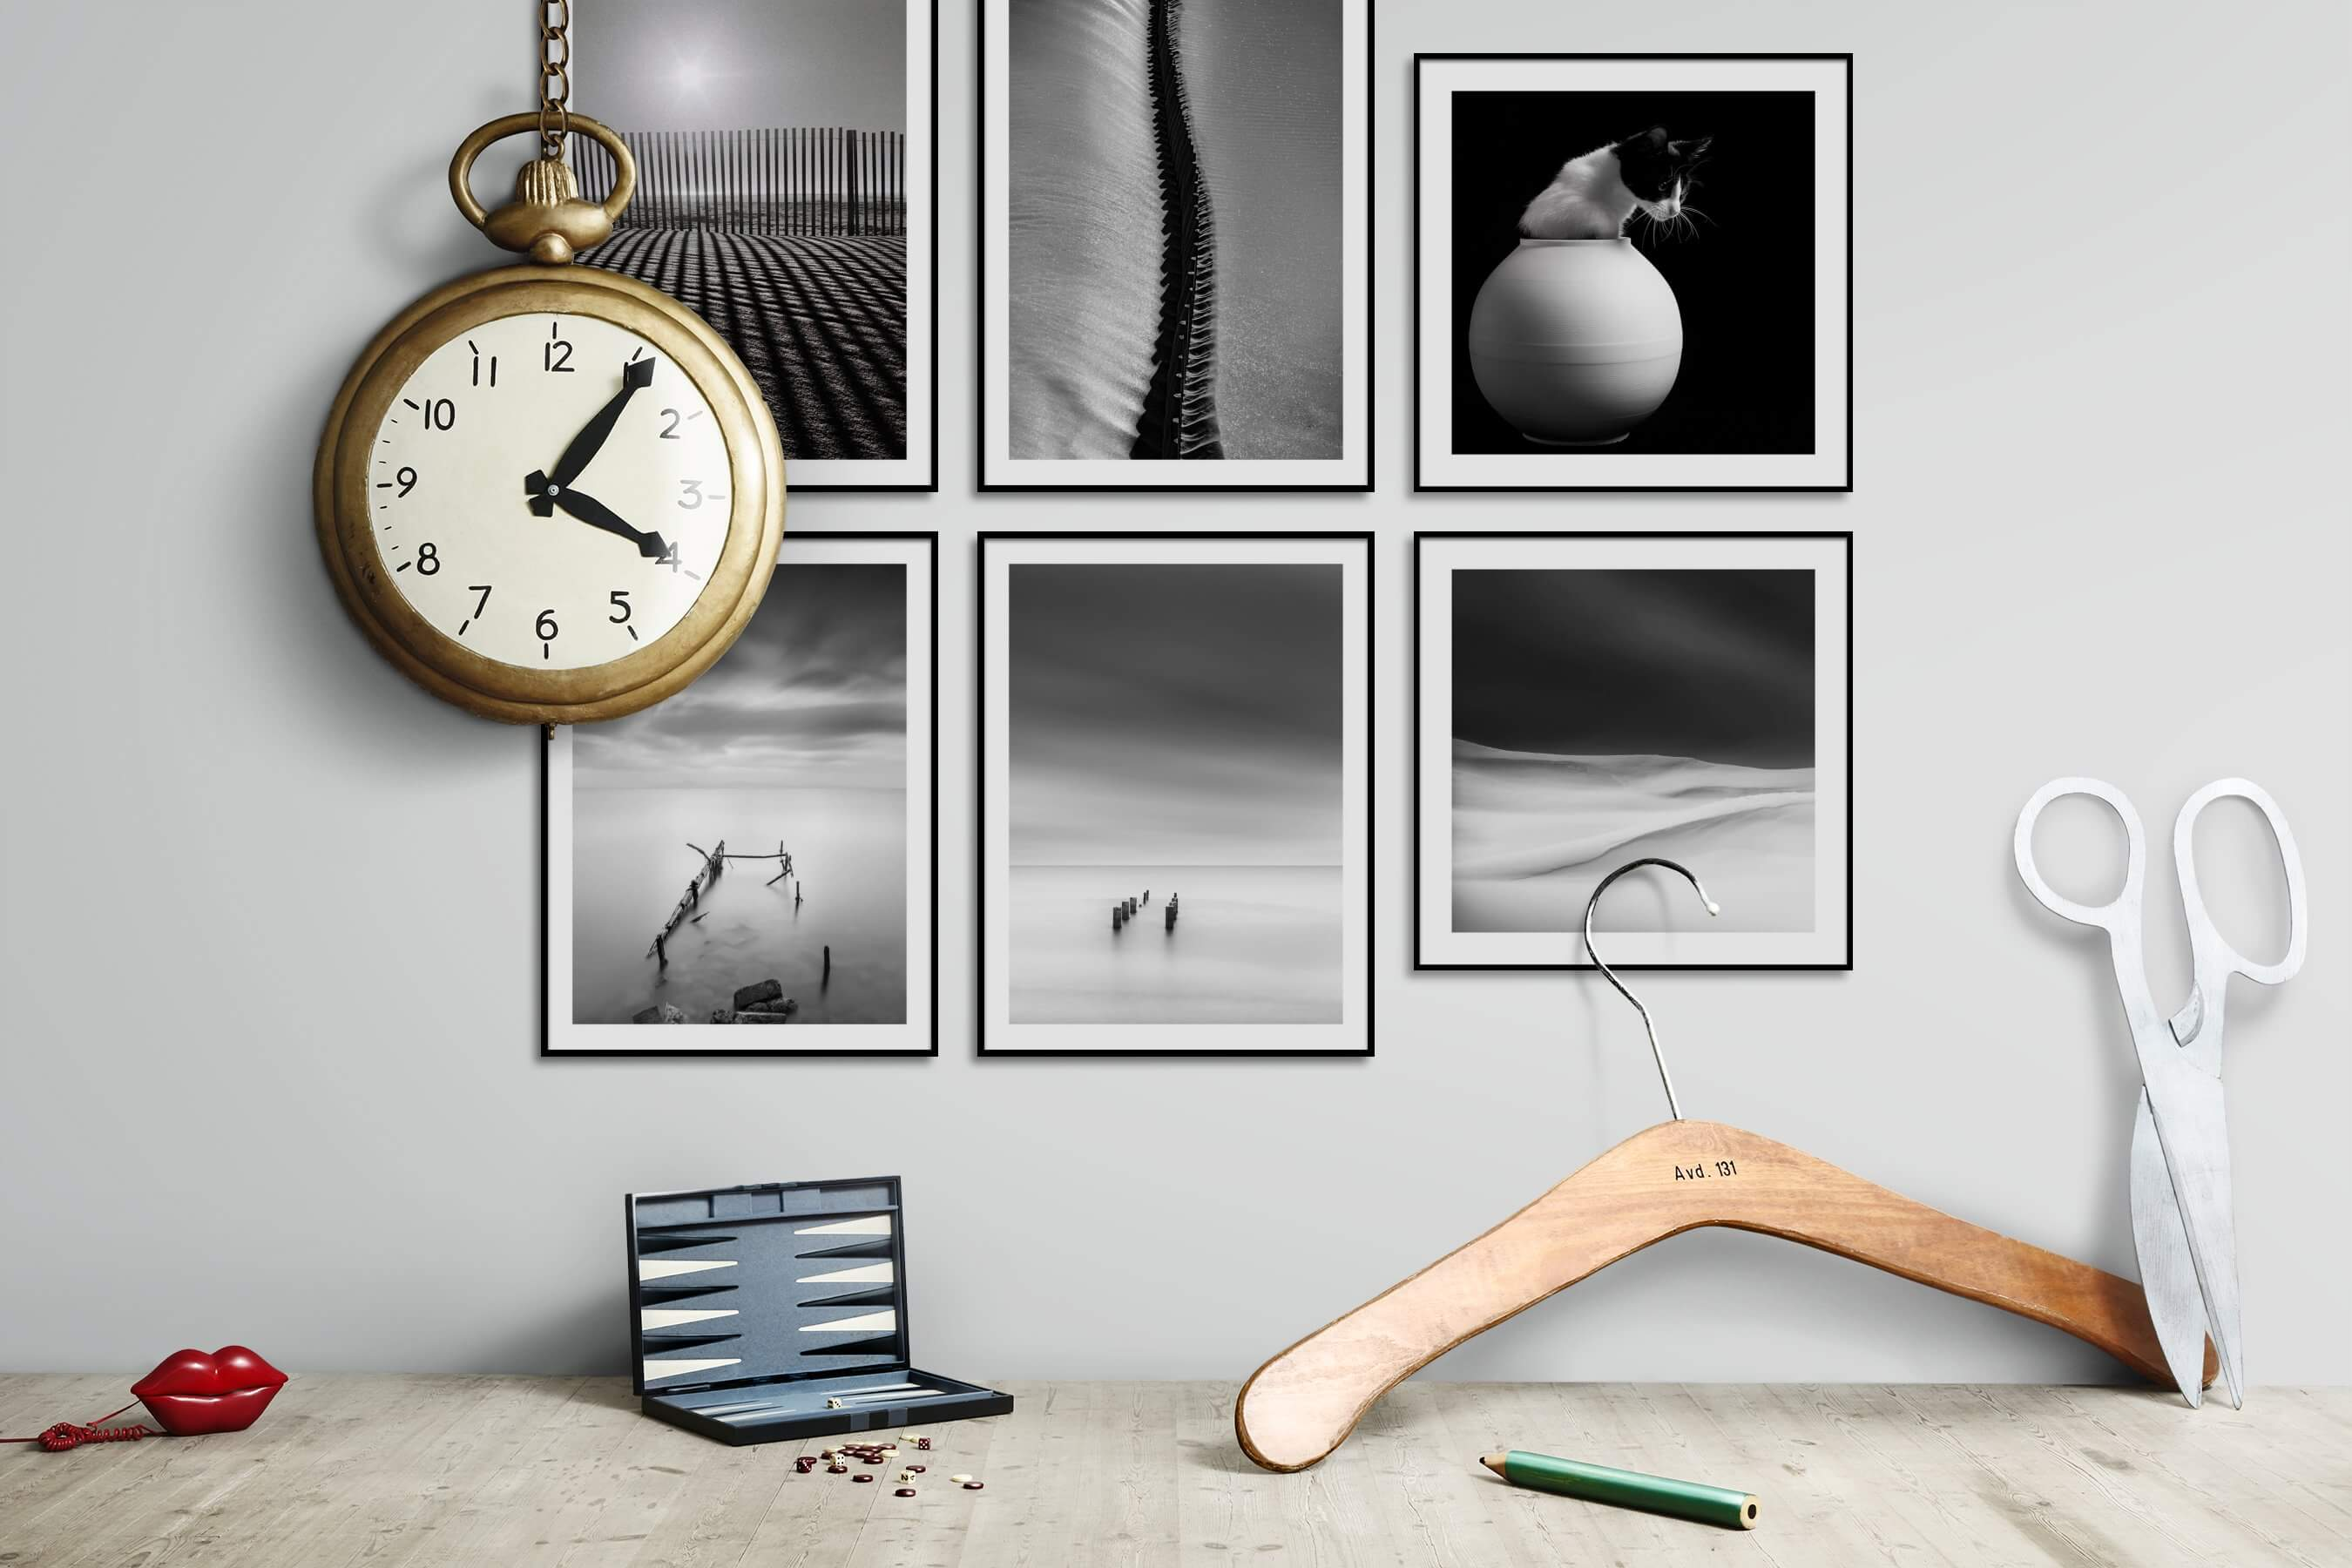 Gallery wall idea with six framed pictures arranged on a wall depicting Black & White, For the Moderate, For the Minimalist, Nature, Beach & Water, Mindfulness, and Animals